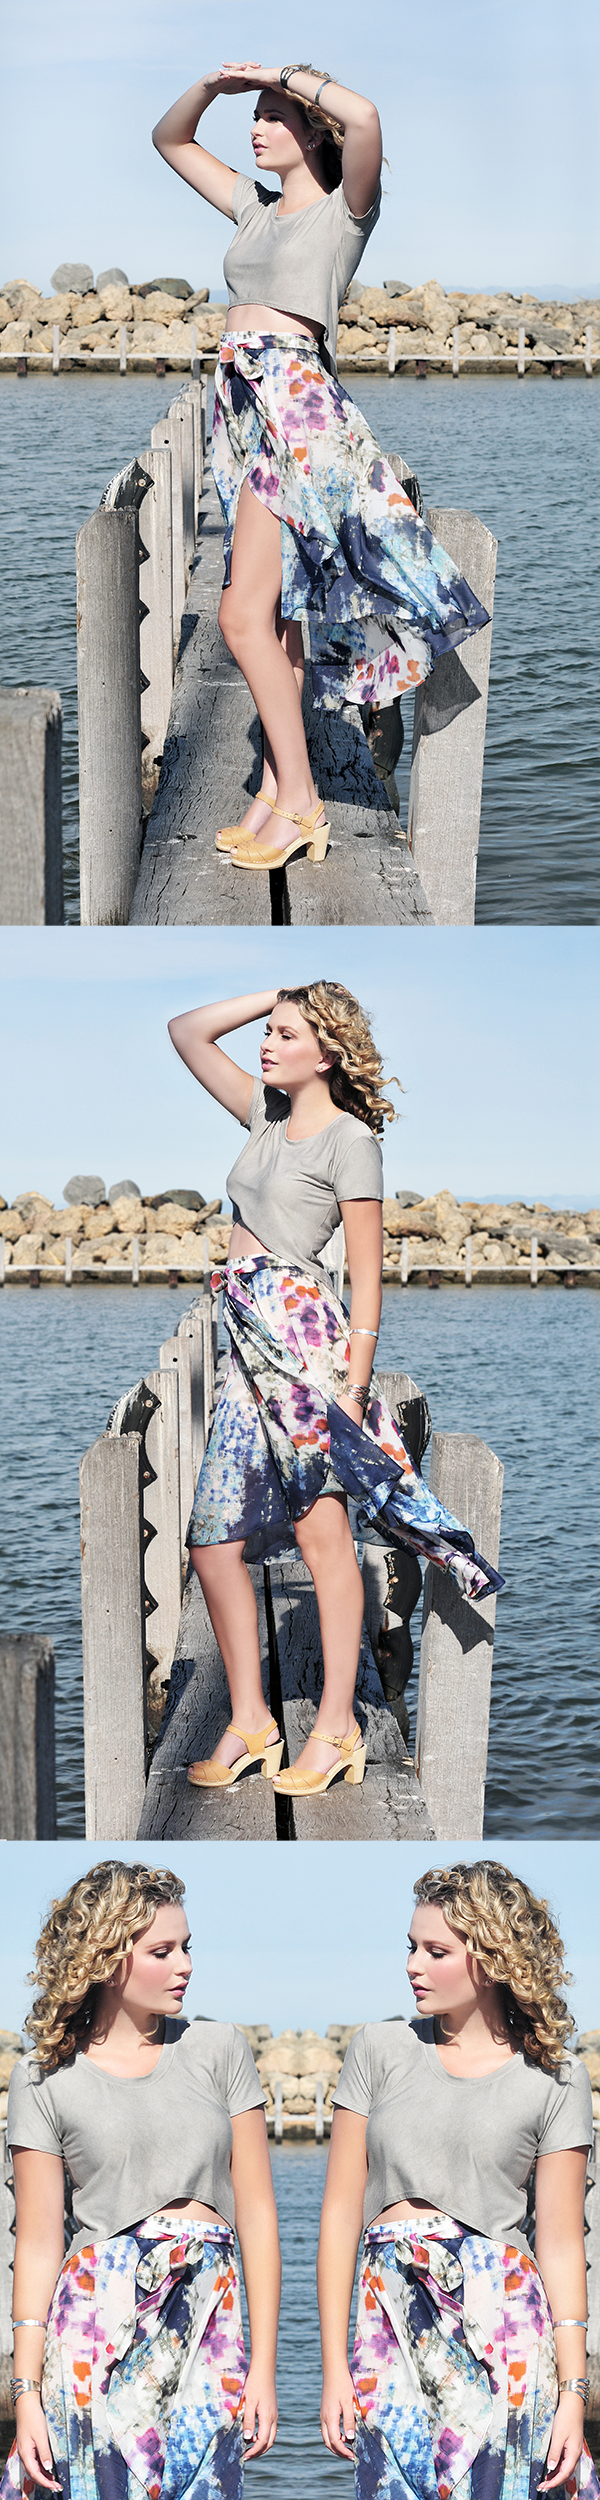 Megan Nielsen Breakwater collection // www.megannielsen.com